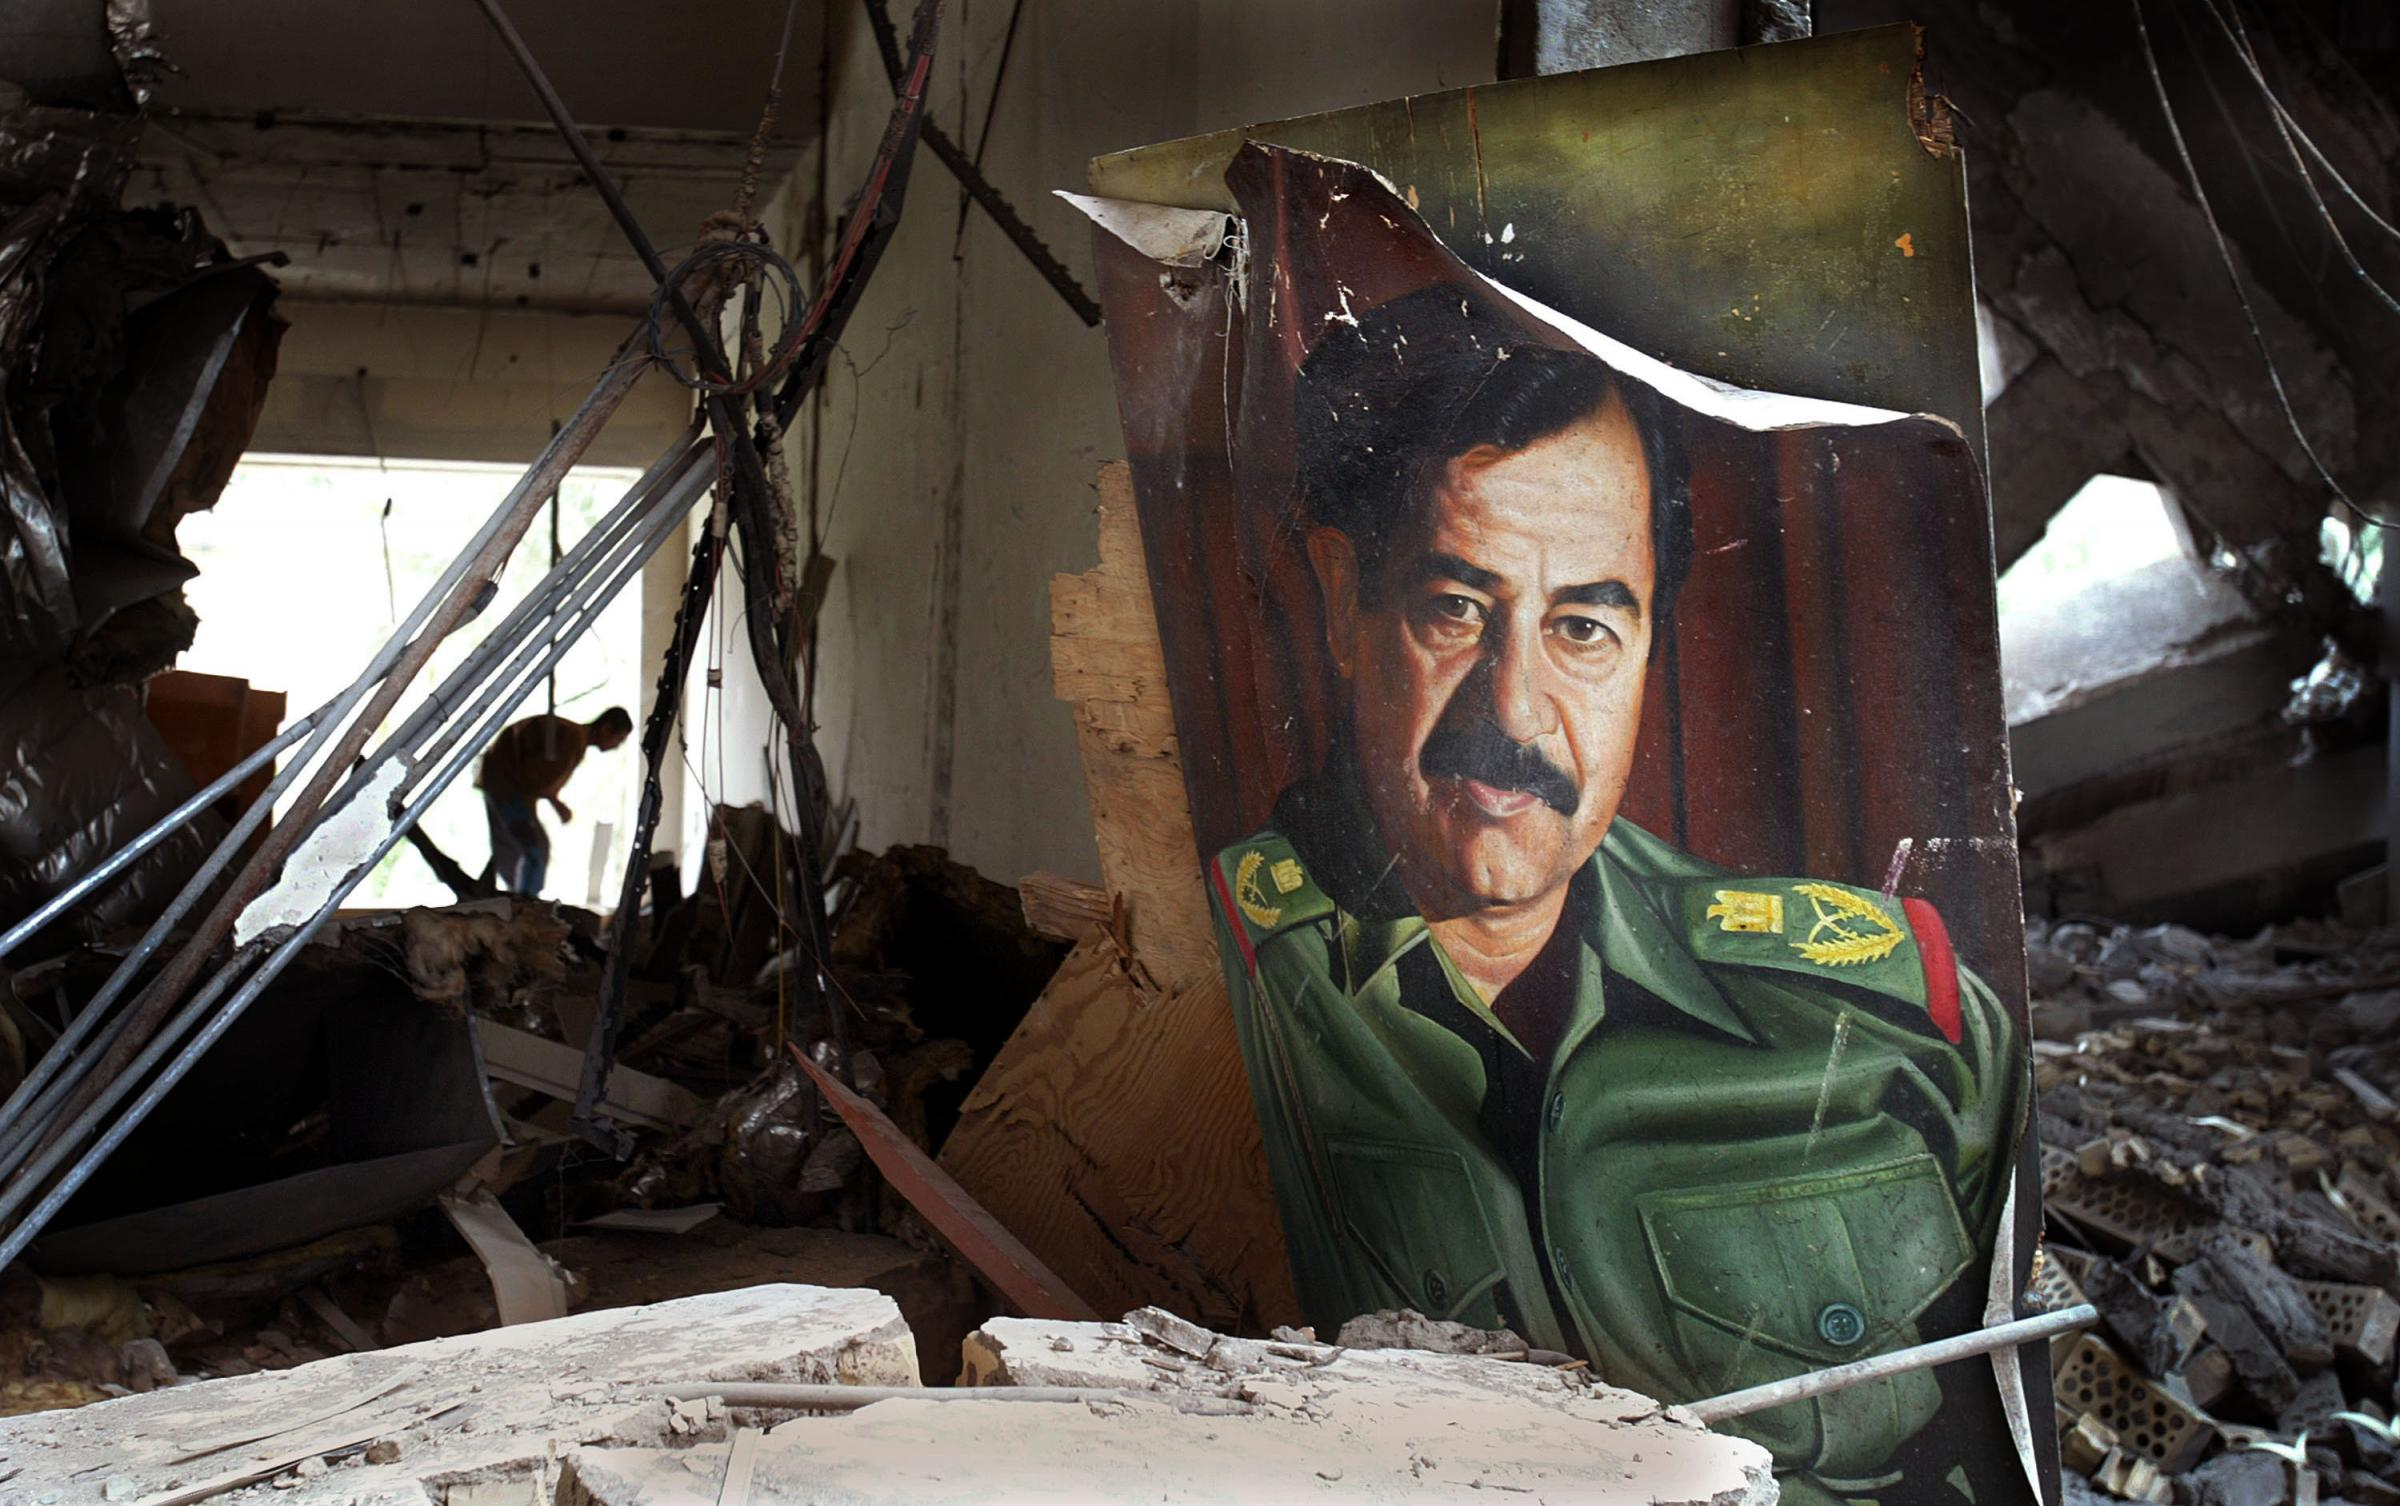 A portrait of Saddam Hussein lies in a bombed government building in April 2003 in Basra, Iraq